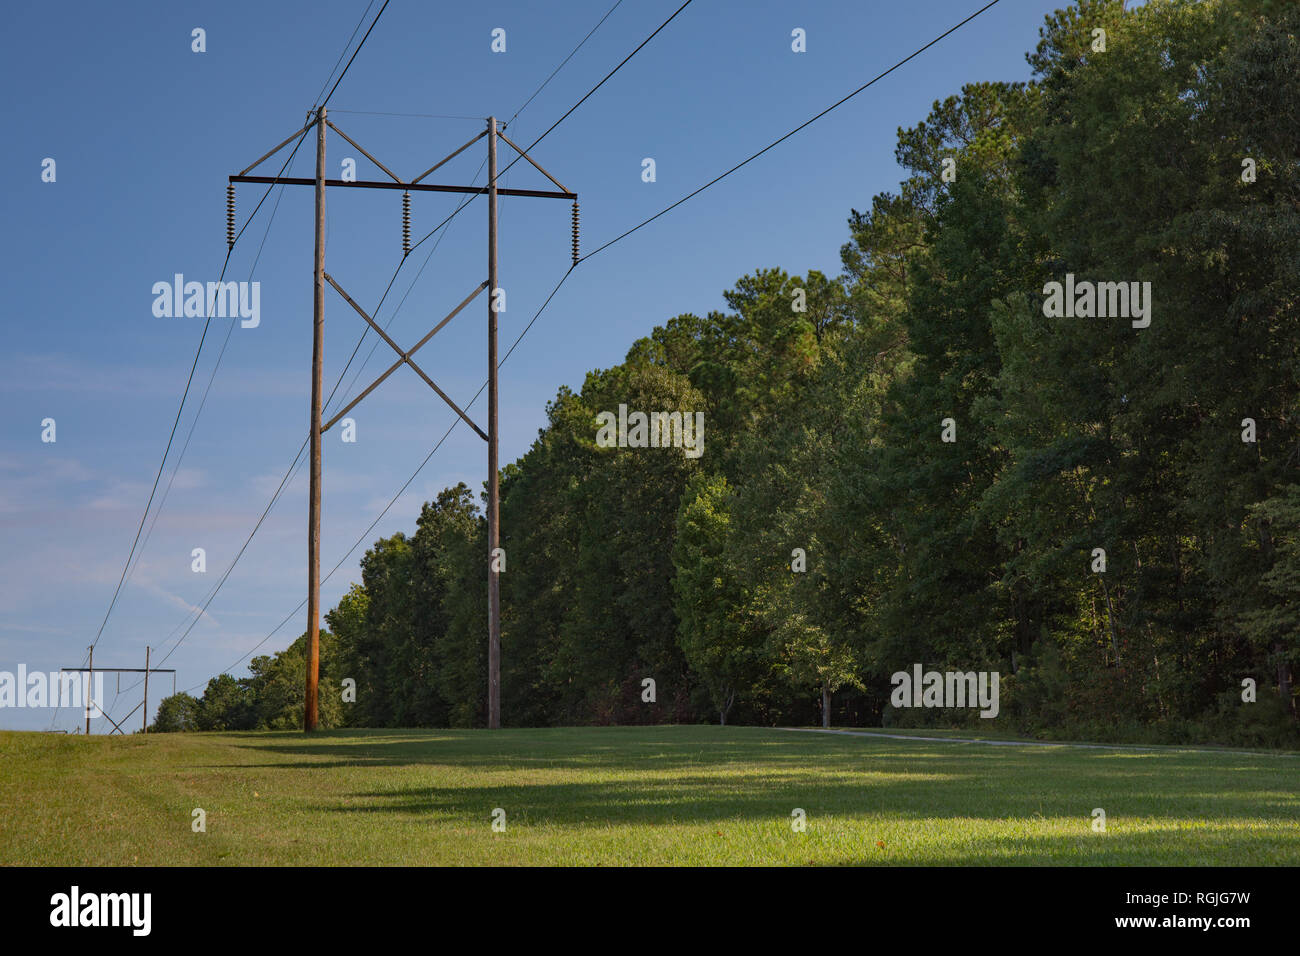 High tension power lines with a bright blue sky and green trees and grass. - Stock Image